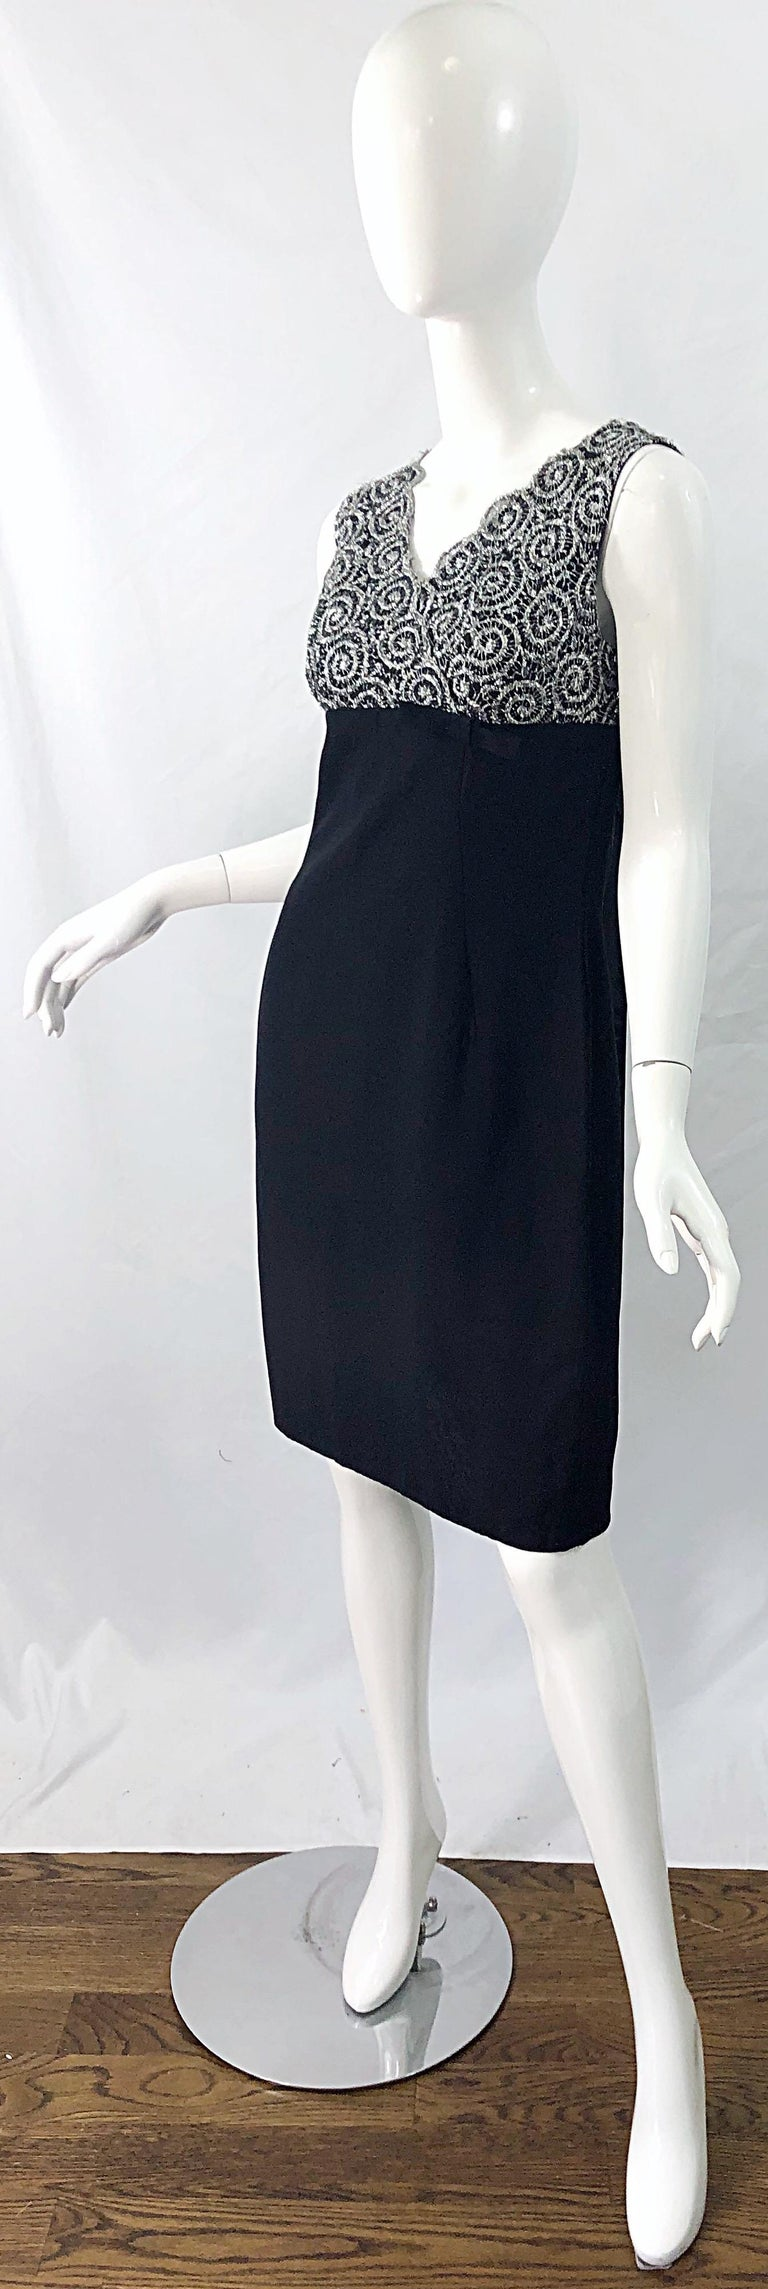 Chic 1960s Black and Silver Metallic Lace Rayon Crepe Vintage 60s Sheath Dress For Sale 2